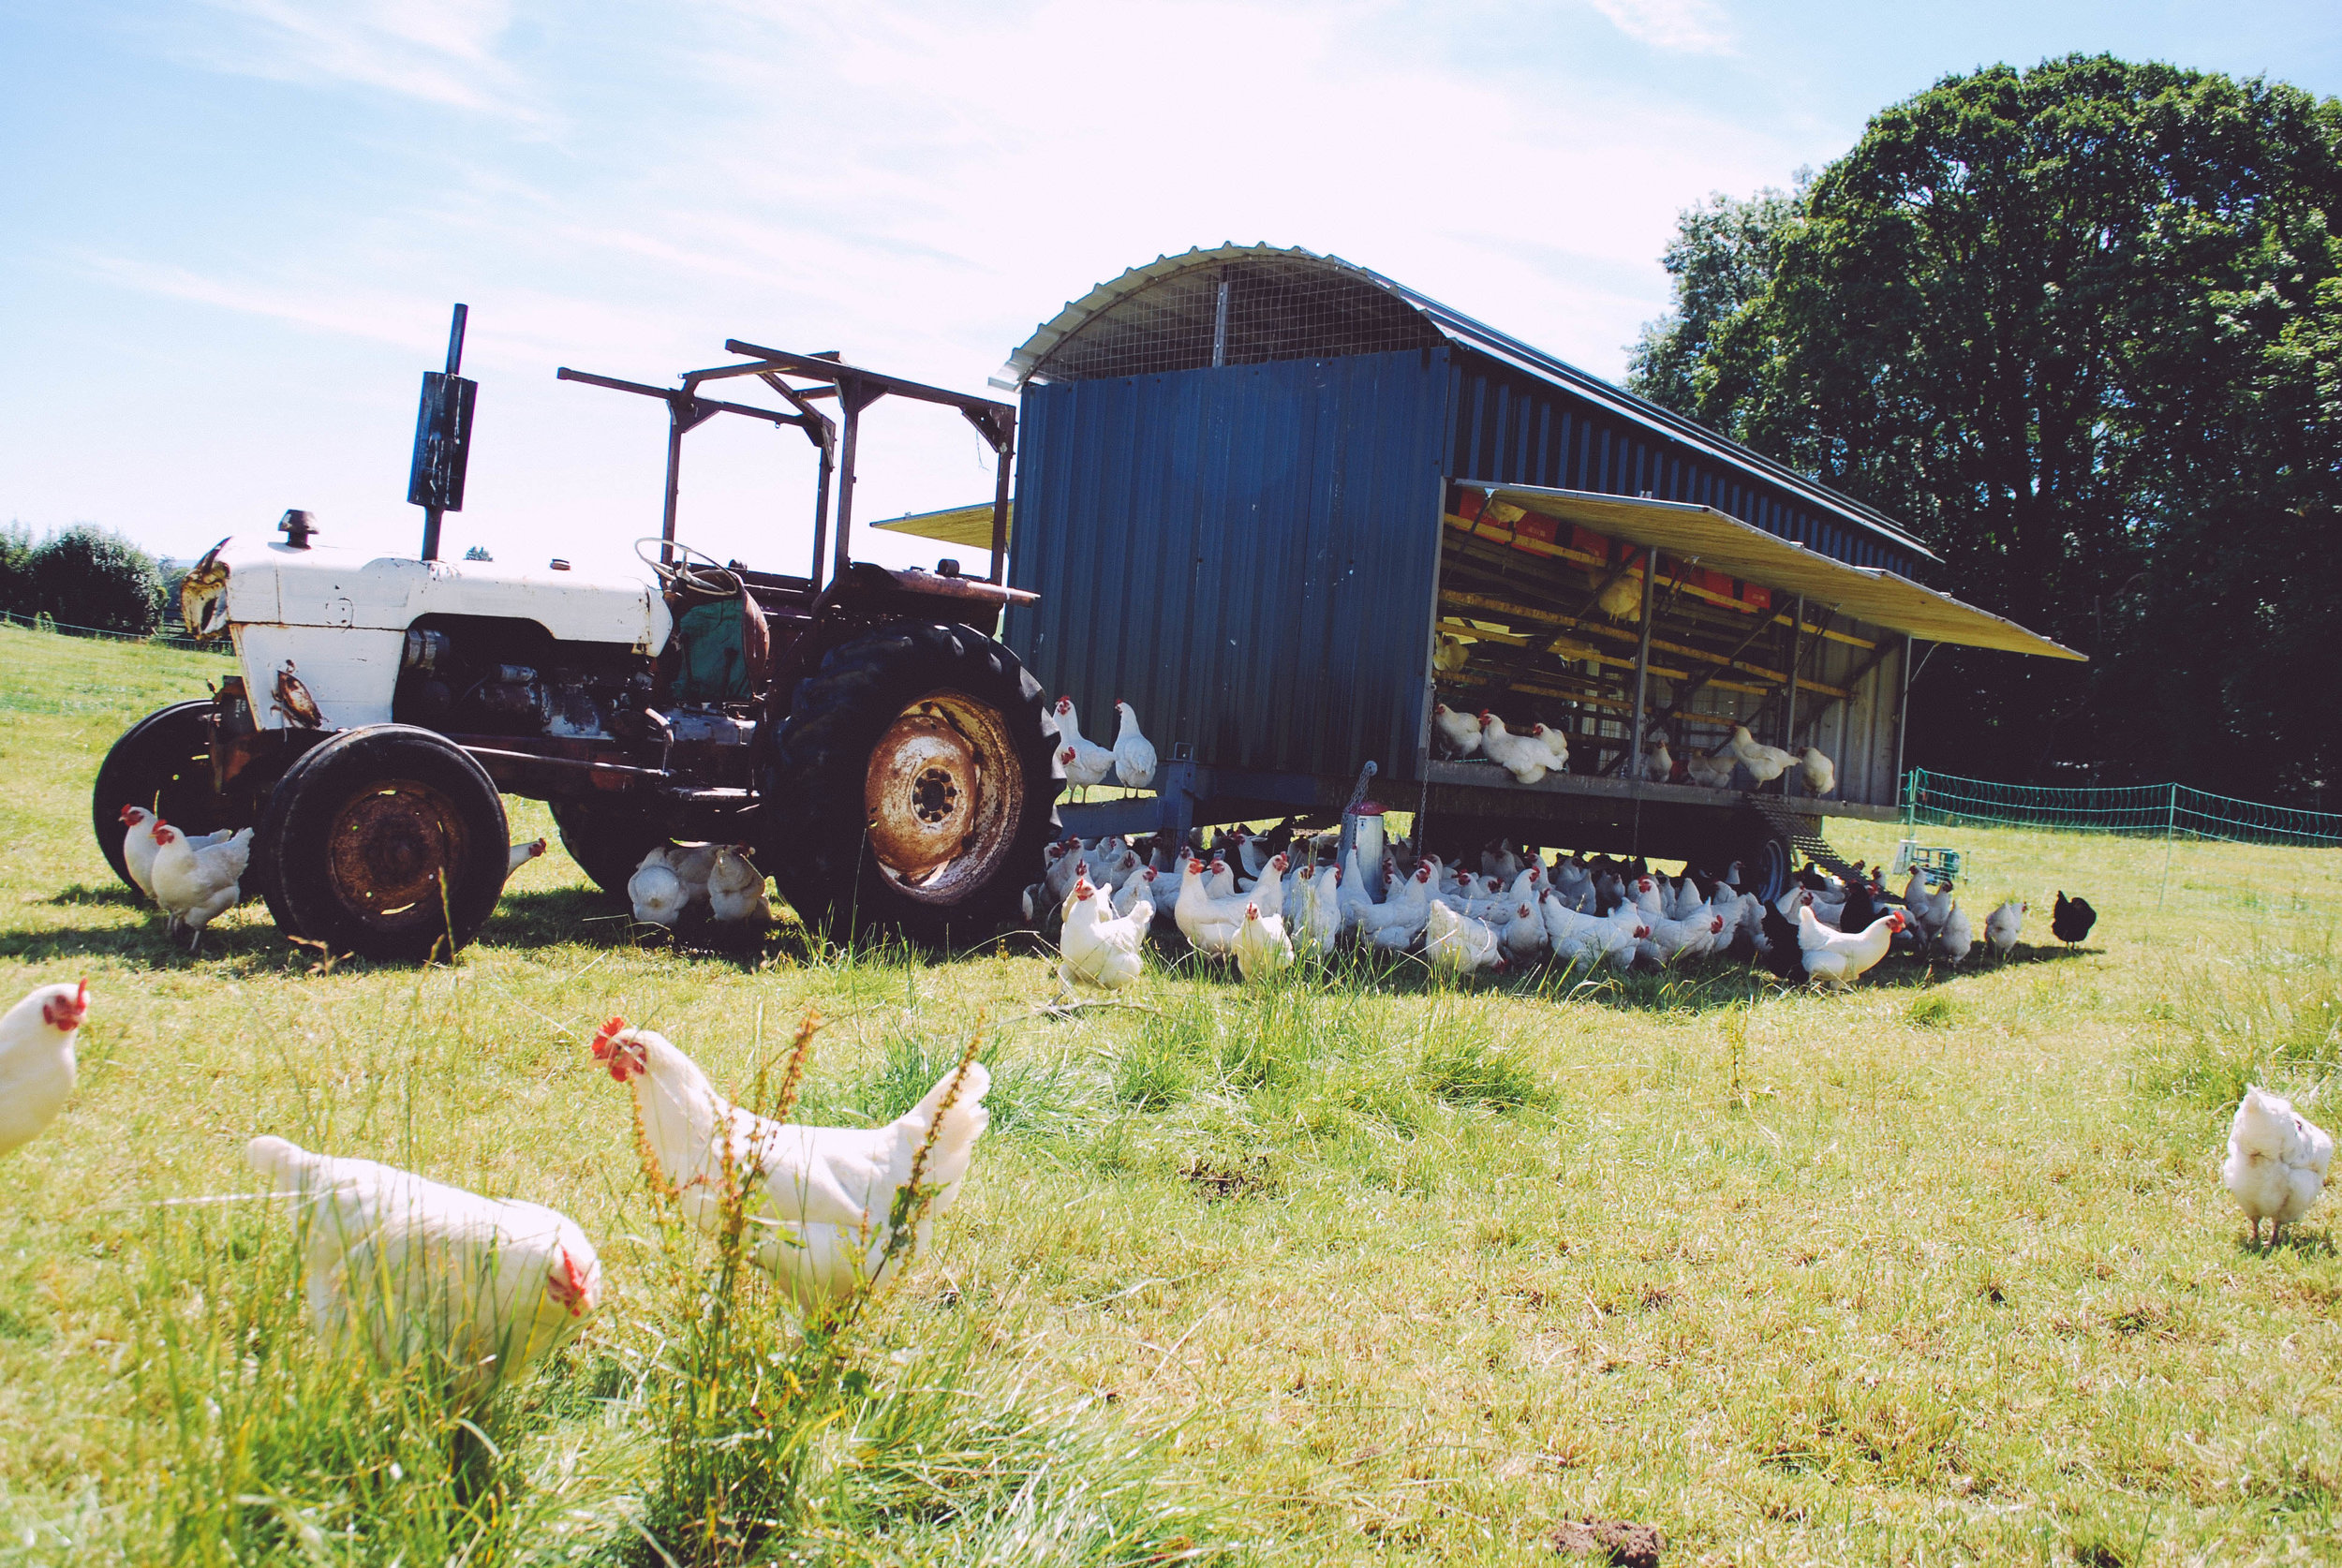 read More on the food, farming and countryside commission -